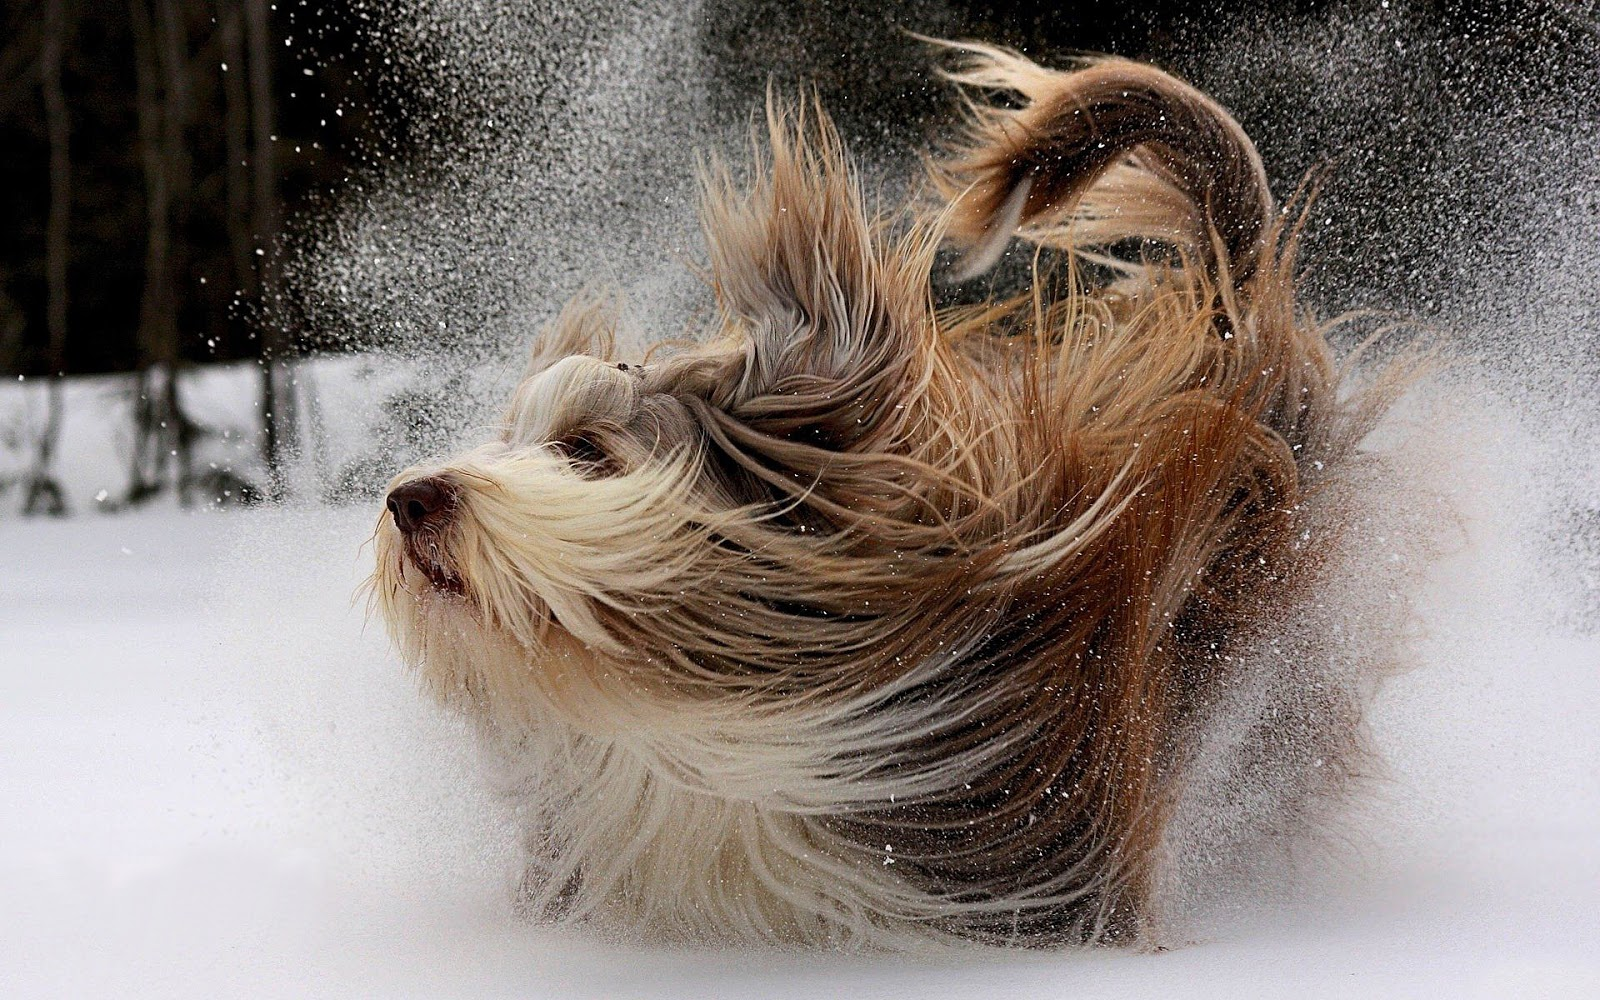 Dog wallpaper with a cute dog playing in the snow | HD winter ...